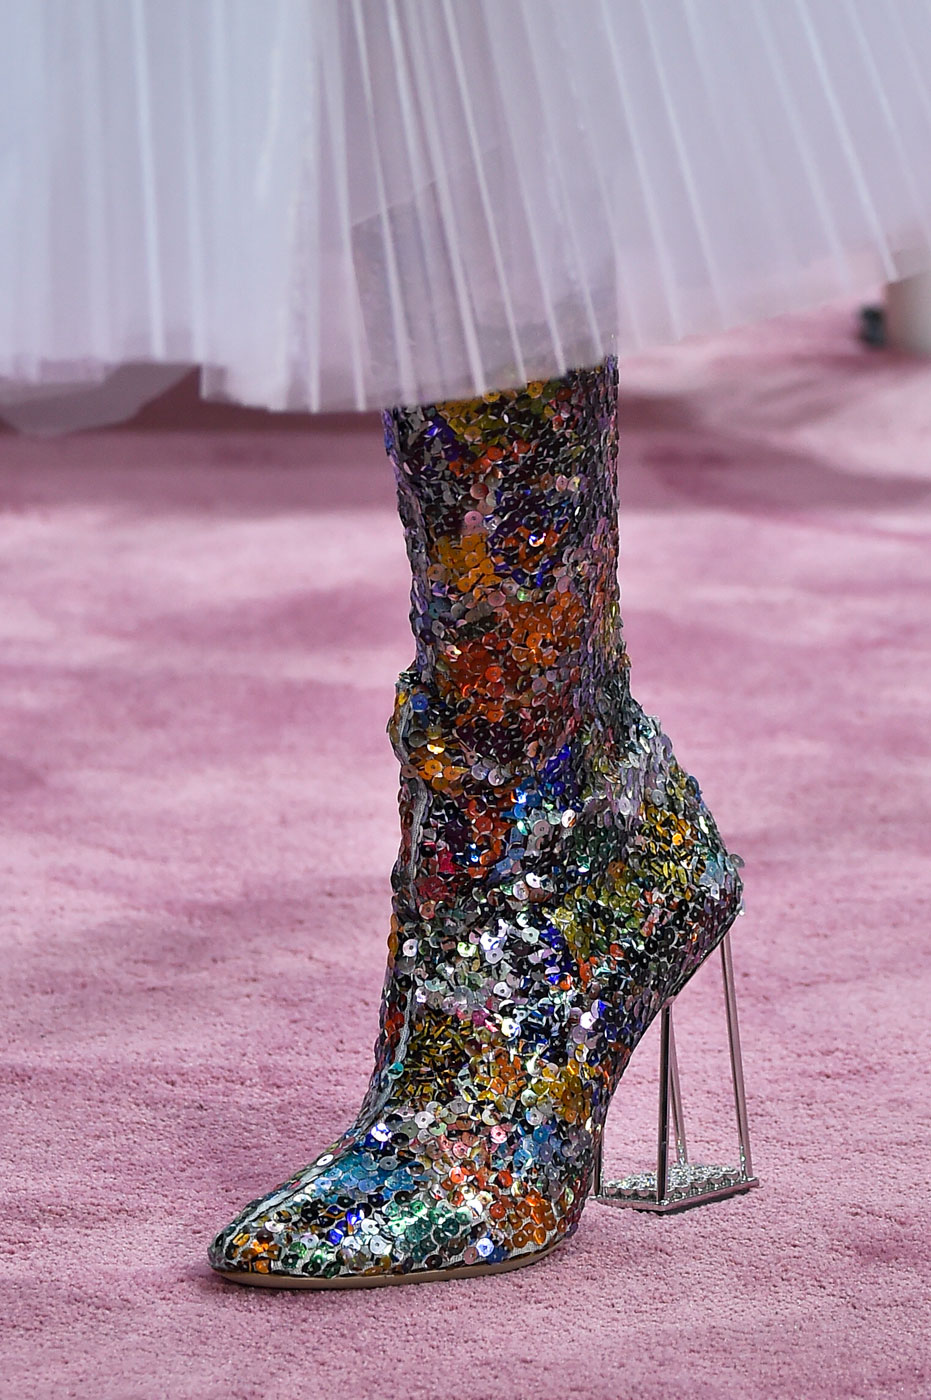 Christian-Dior-fashion-runway-show-close-ups-haute-couture-paris-spring-summer-2015-the-impression-180